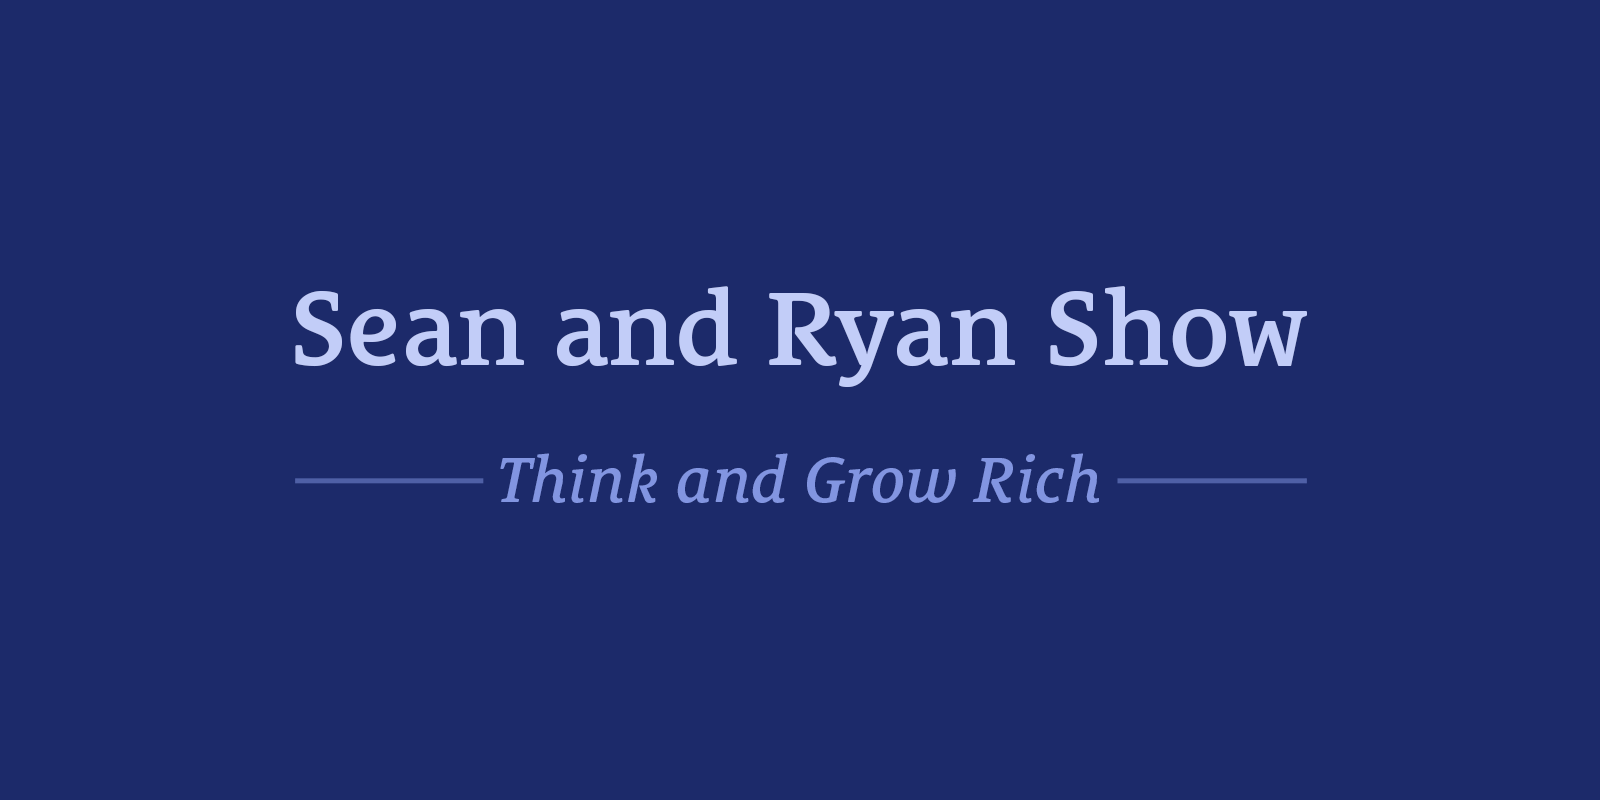 421: Sean and Ryan Show: Think and Grow Rich – Chapter 7: Organized Planning